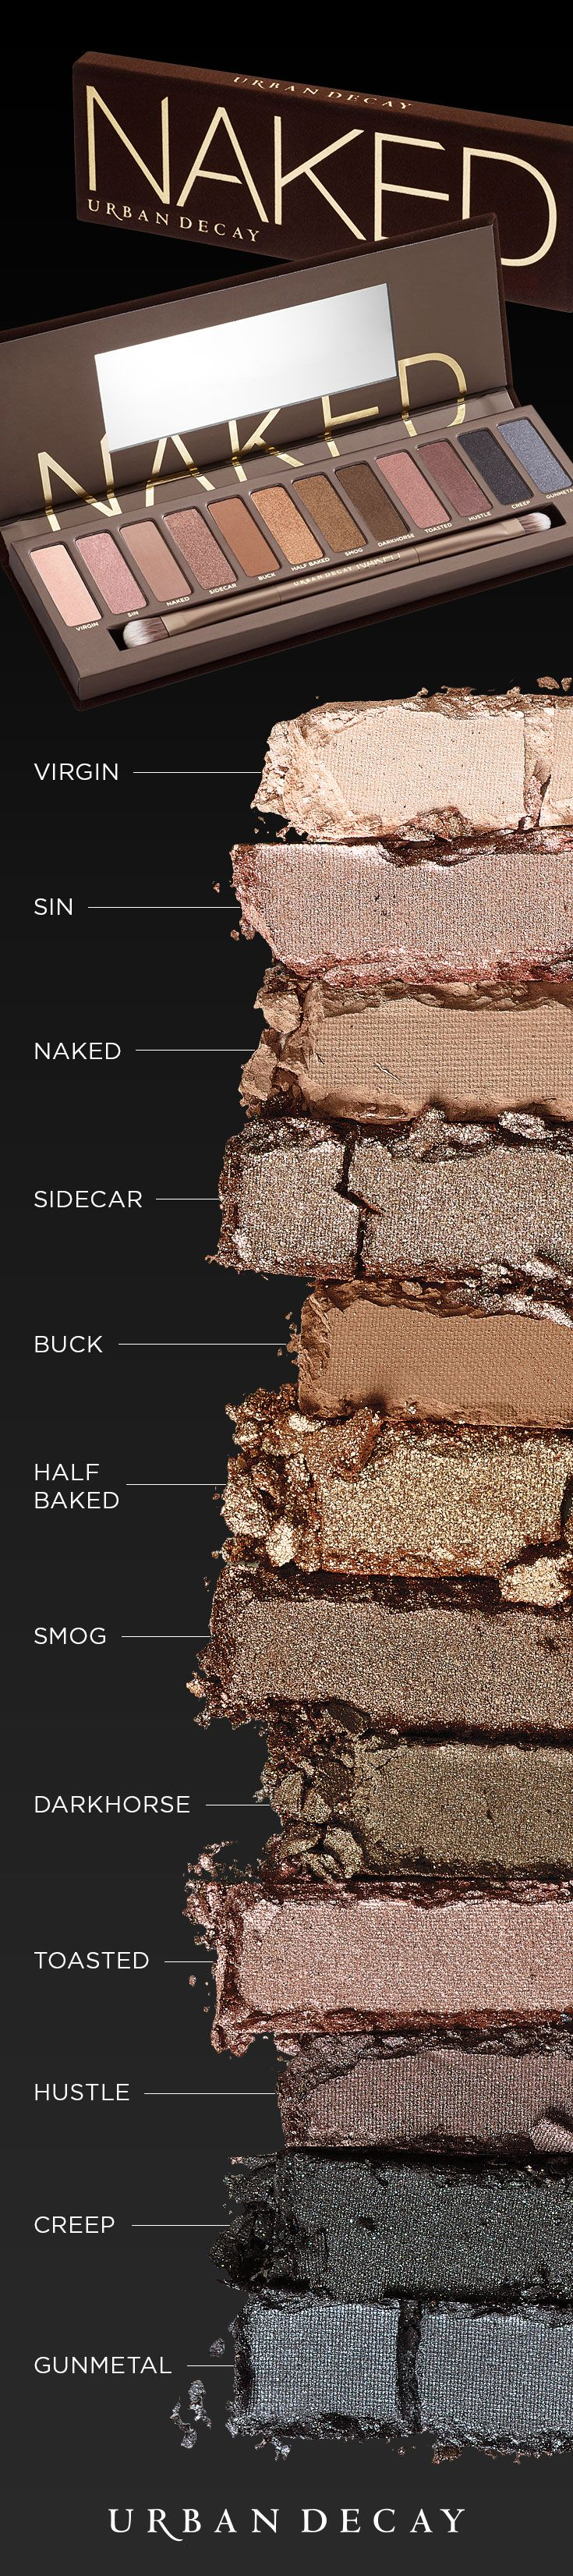 It's the palette that revolutionized neutrals forever. Loaded with 12 bronze-hued shadows in an insane range of textures only Wende and our product development team could dream up—including matte, satin, shimmer and sparkle—Naked proves that neutral is anything but boring. From the palest champagne to the grittiest gunmetal, it's all here. Whether you're going for a laid-back, beachy vibe or black-tie drama, you'll definitely look better Naked.